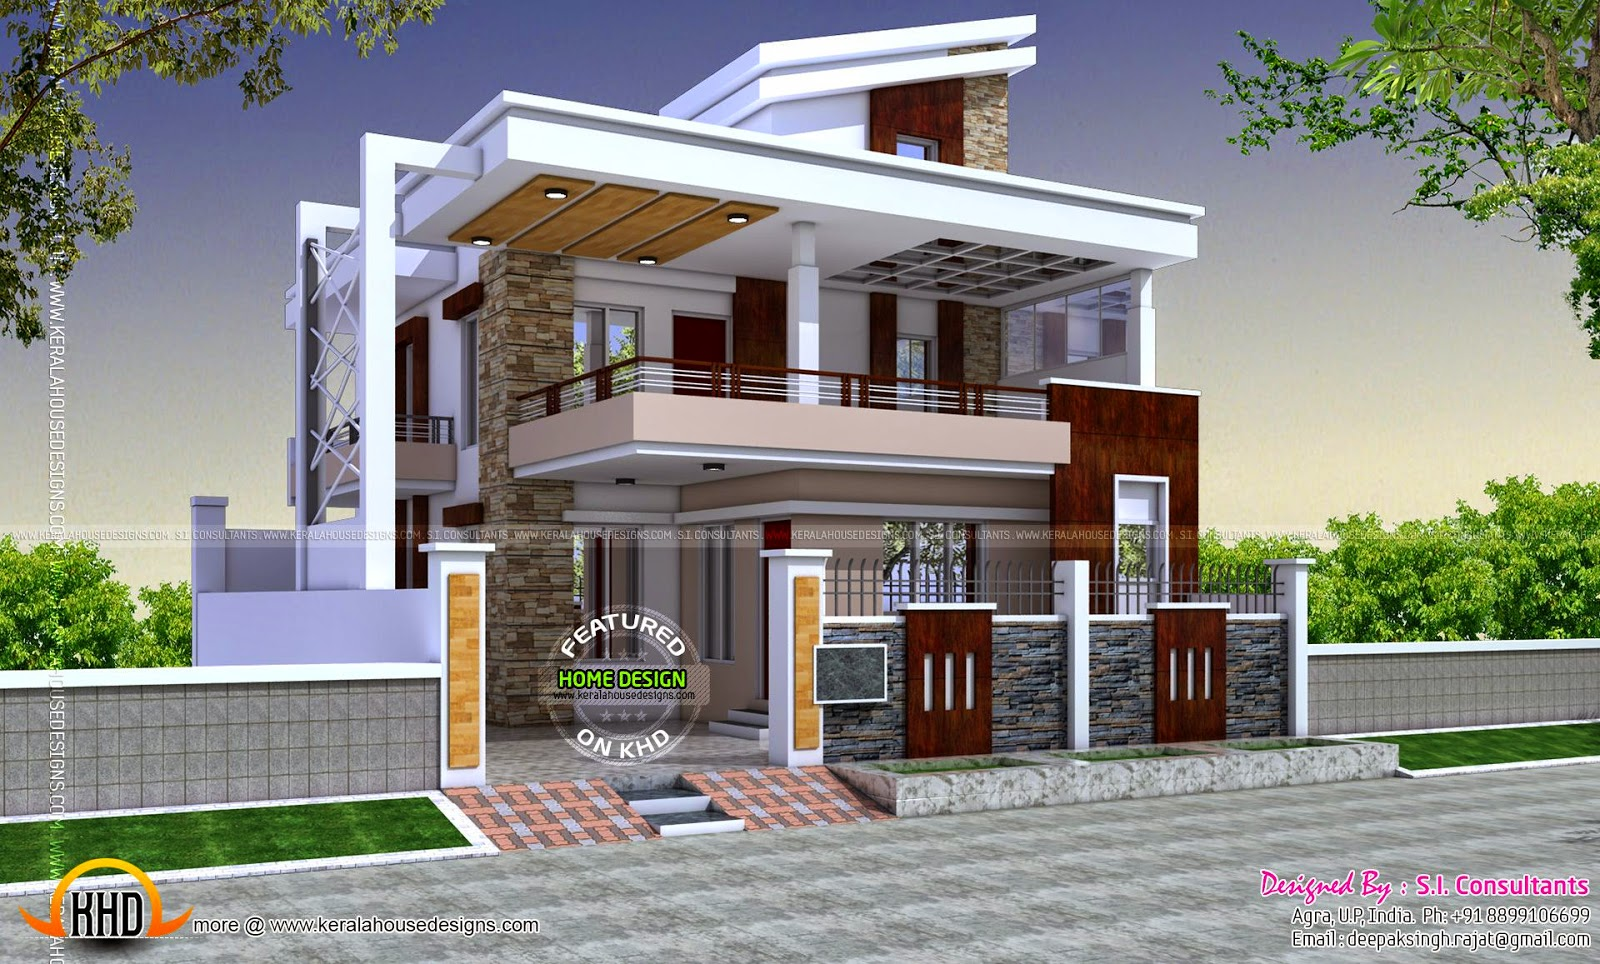 Indian model house designs